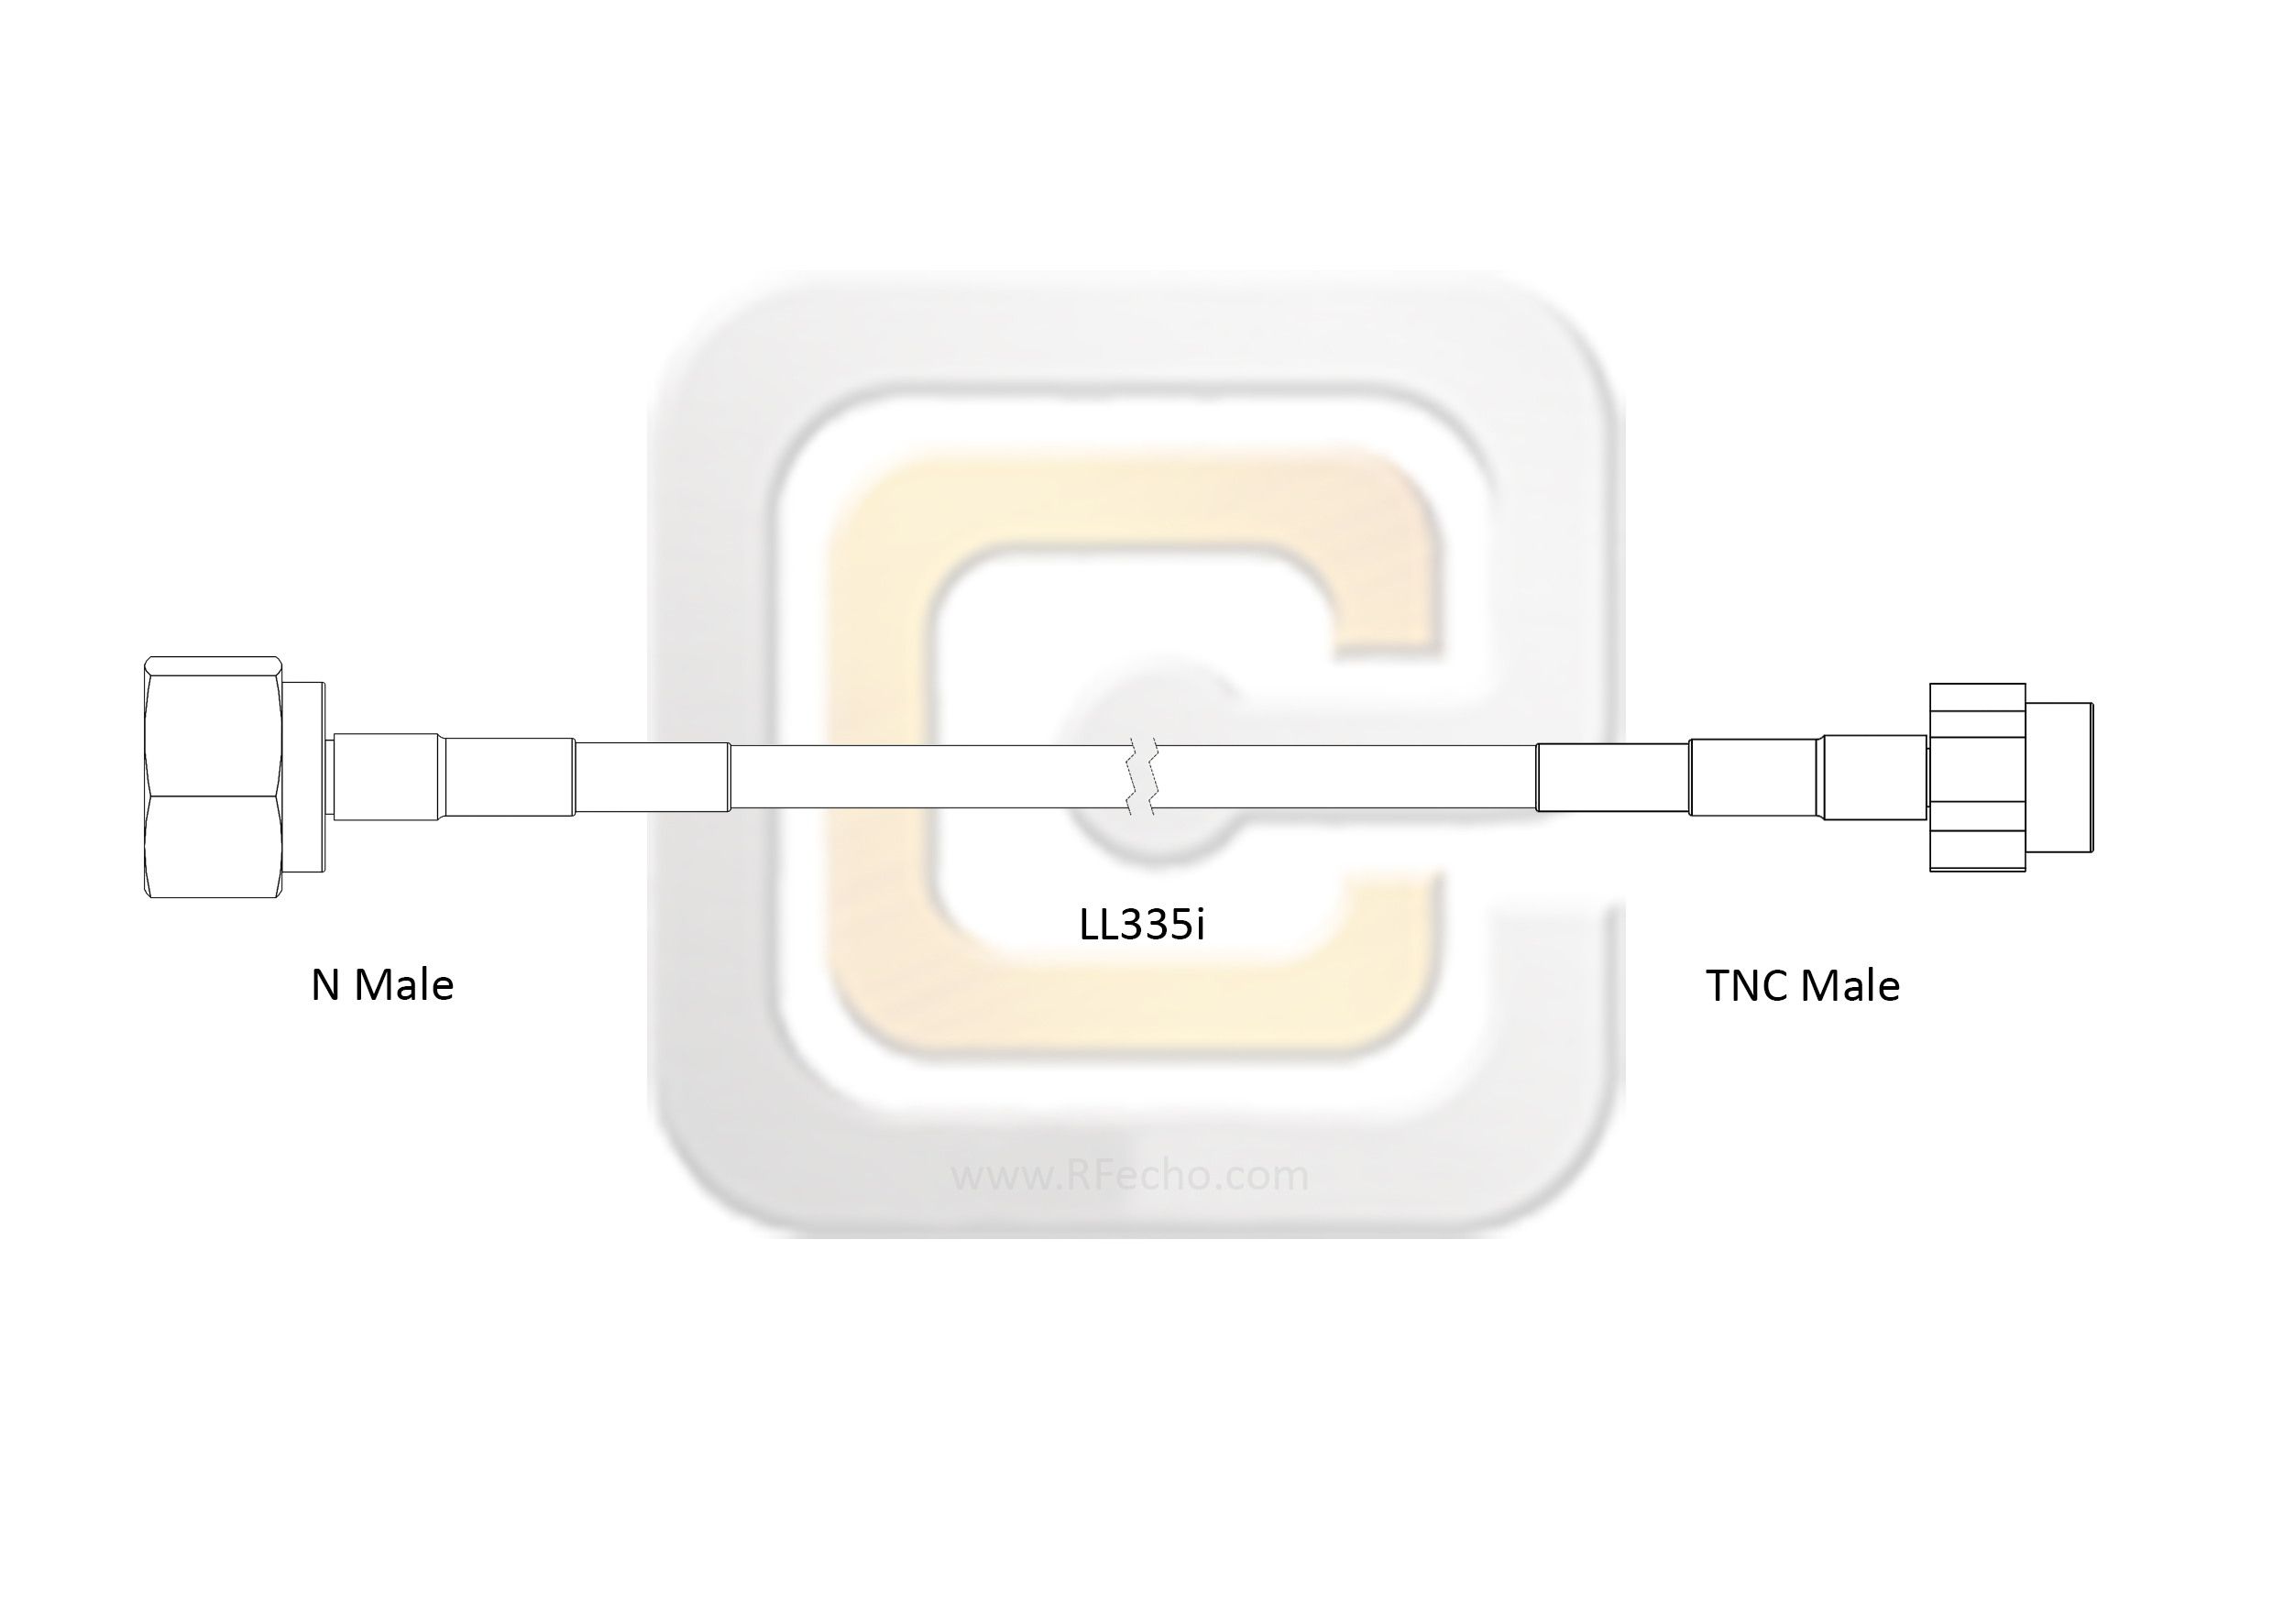 F040 291S0 411S0 110 N outline Low Loss N Male to TNC Male, 11 GHz,  LL335i Coax and RoHS